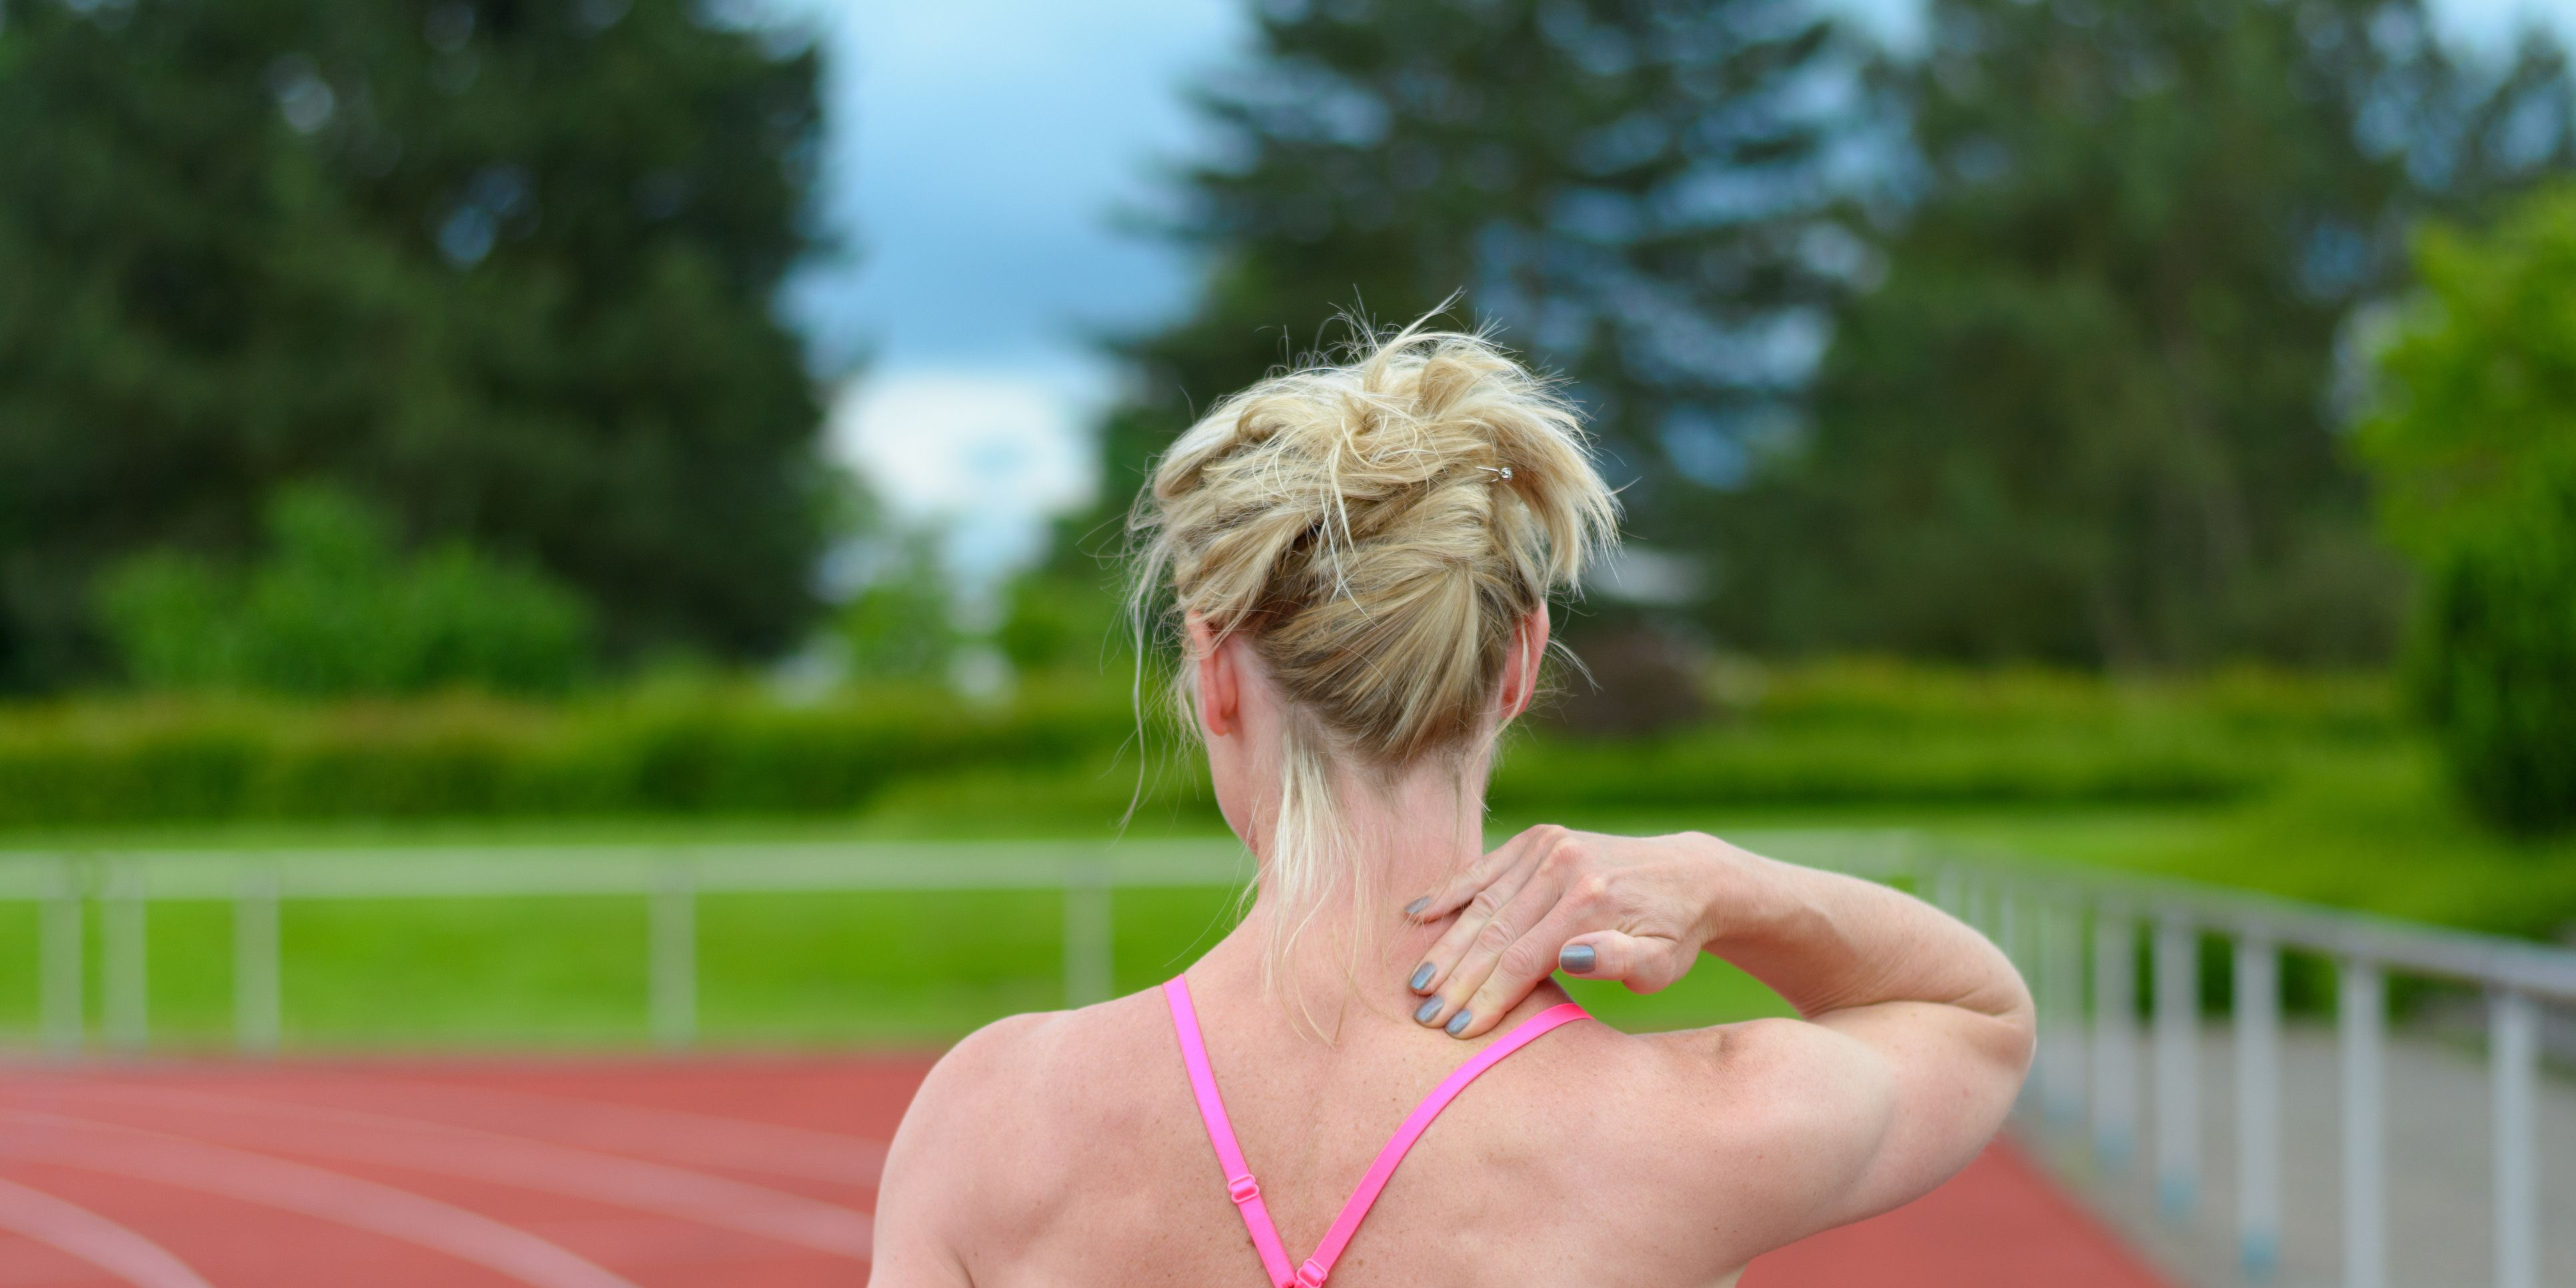 Rear View Of Female Athlete Standing With Shoulder Pain On Running Track